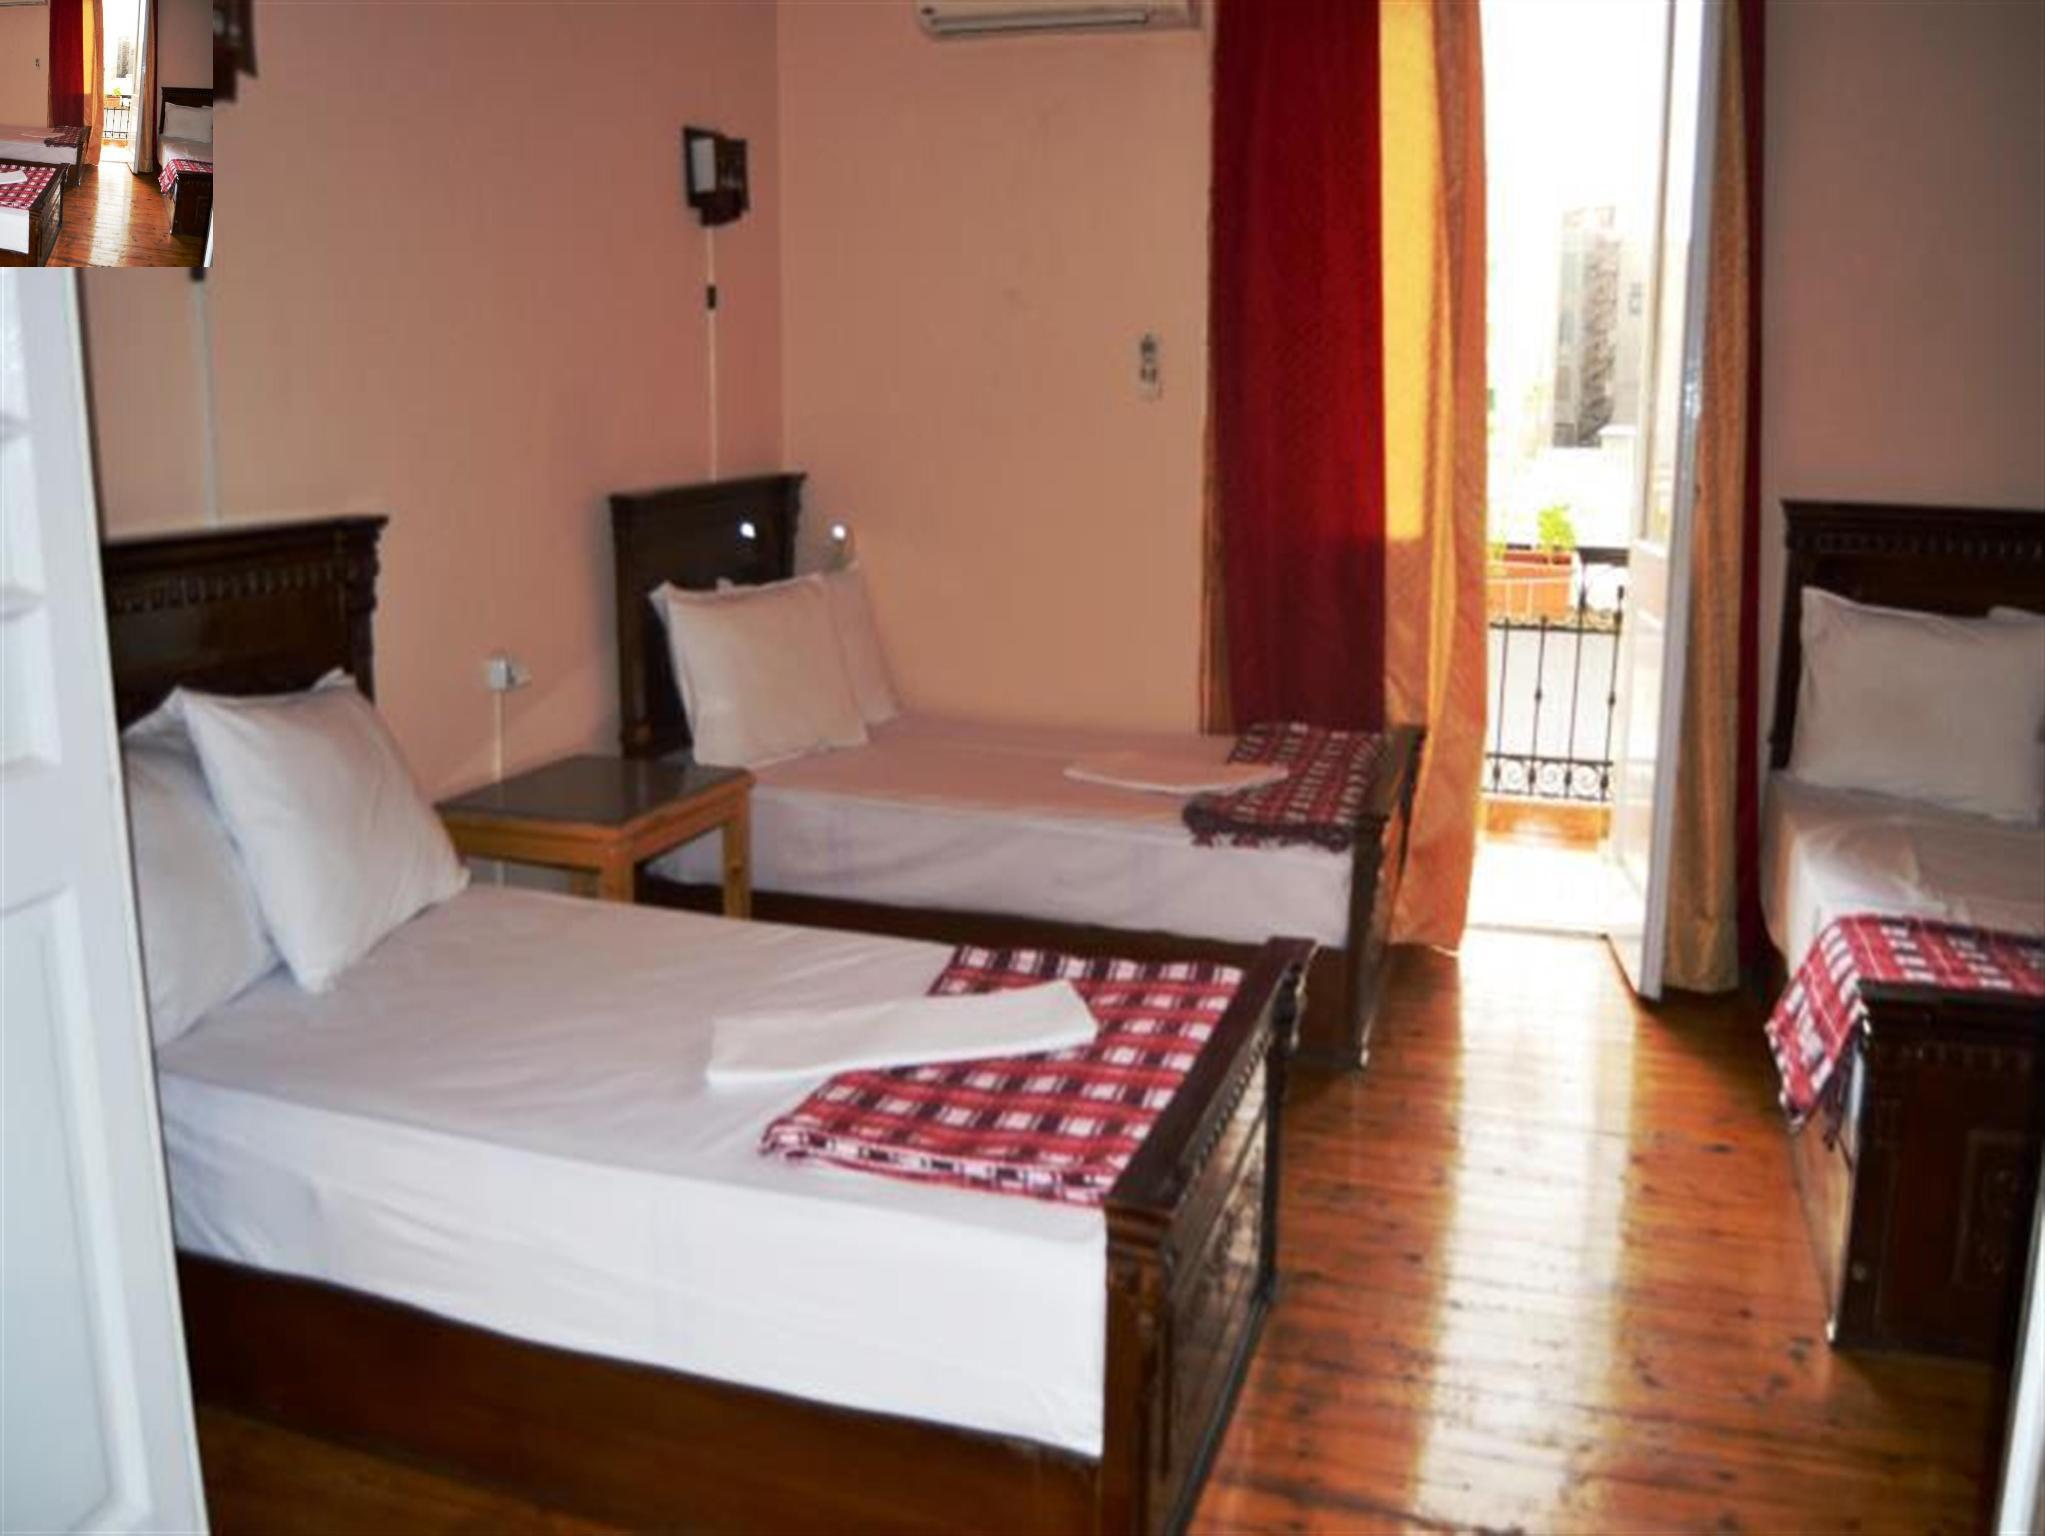 1 Llit en Dormitori de 6 Llits (Dormitory Room with Air Condition )